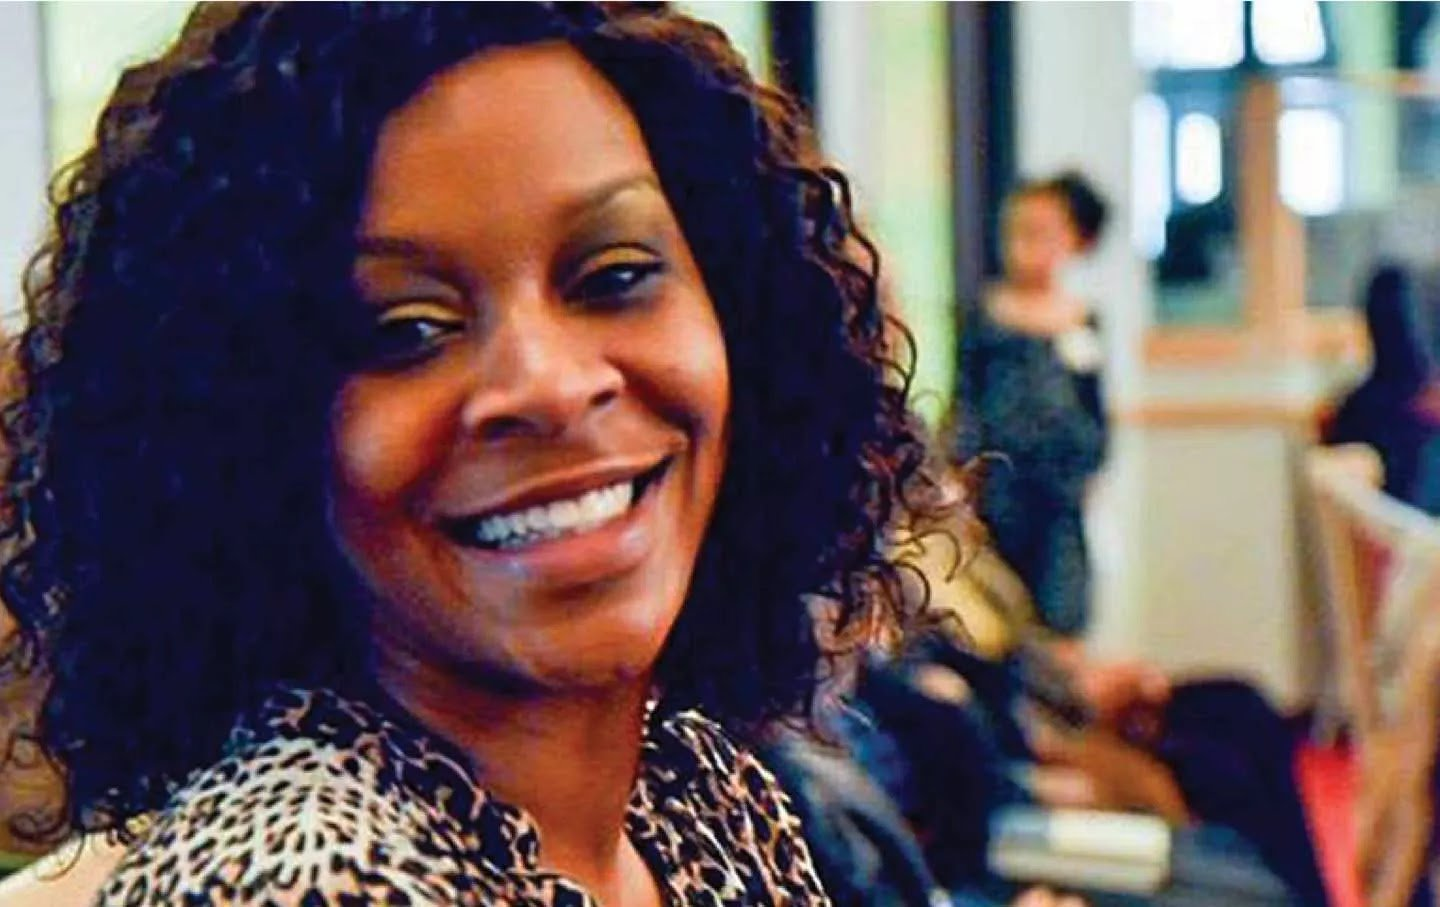 #SayHerName: Remembering Sandra Bland One Year Later